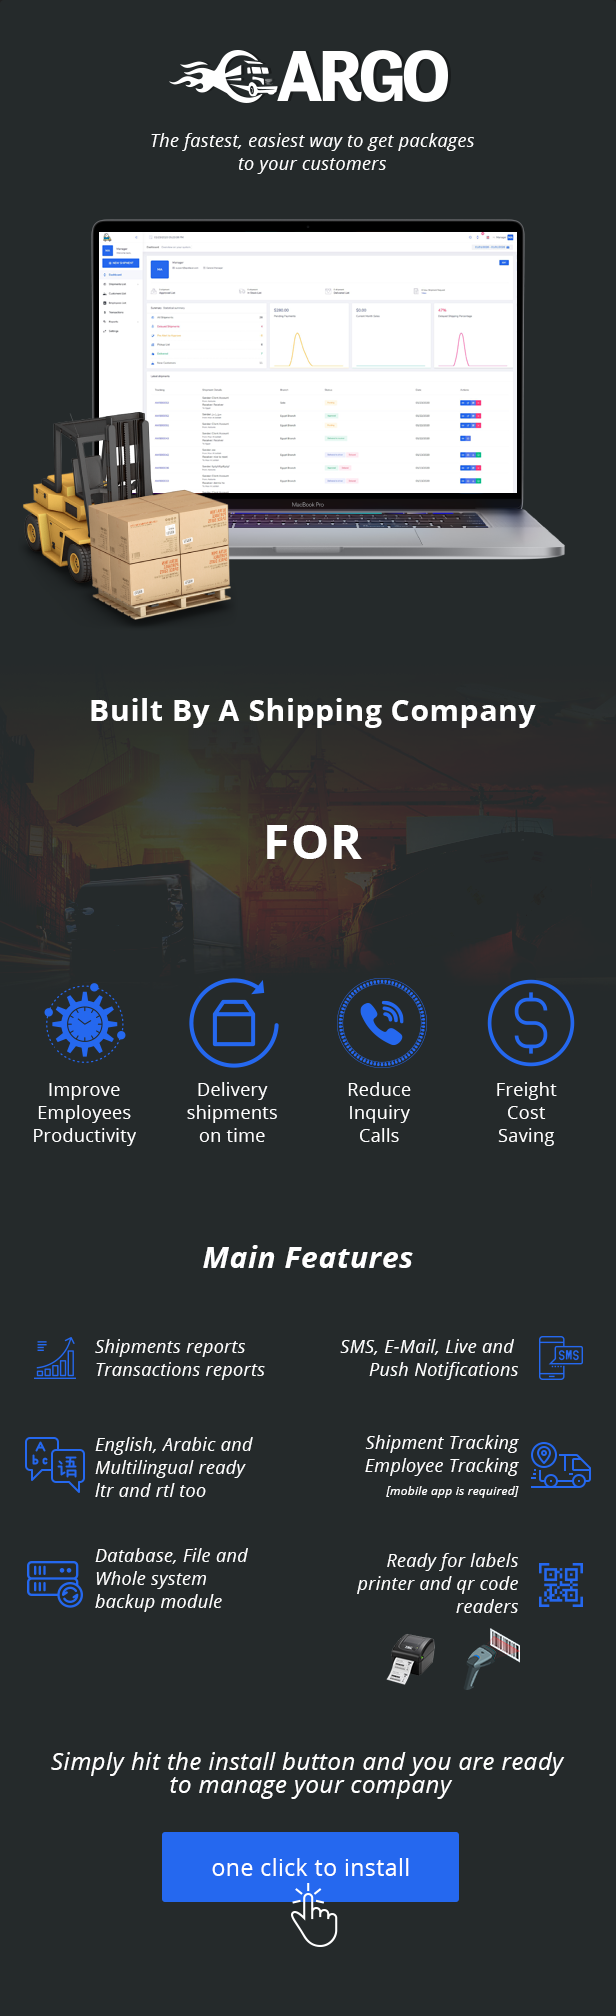 Cargo Pro - Courier System - 1